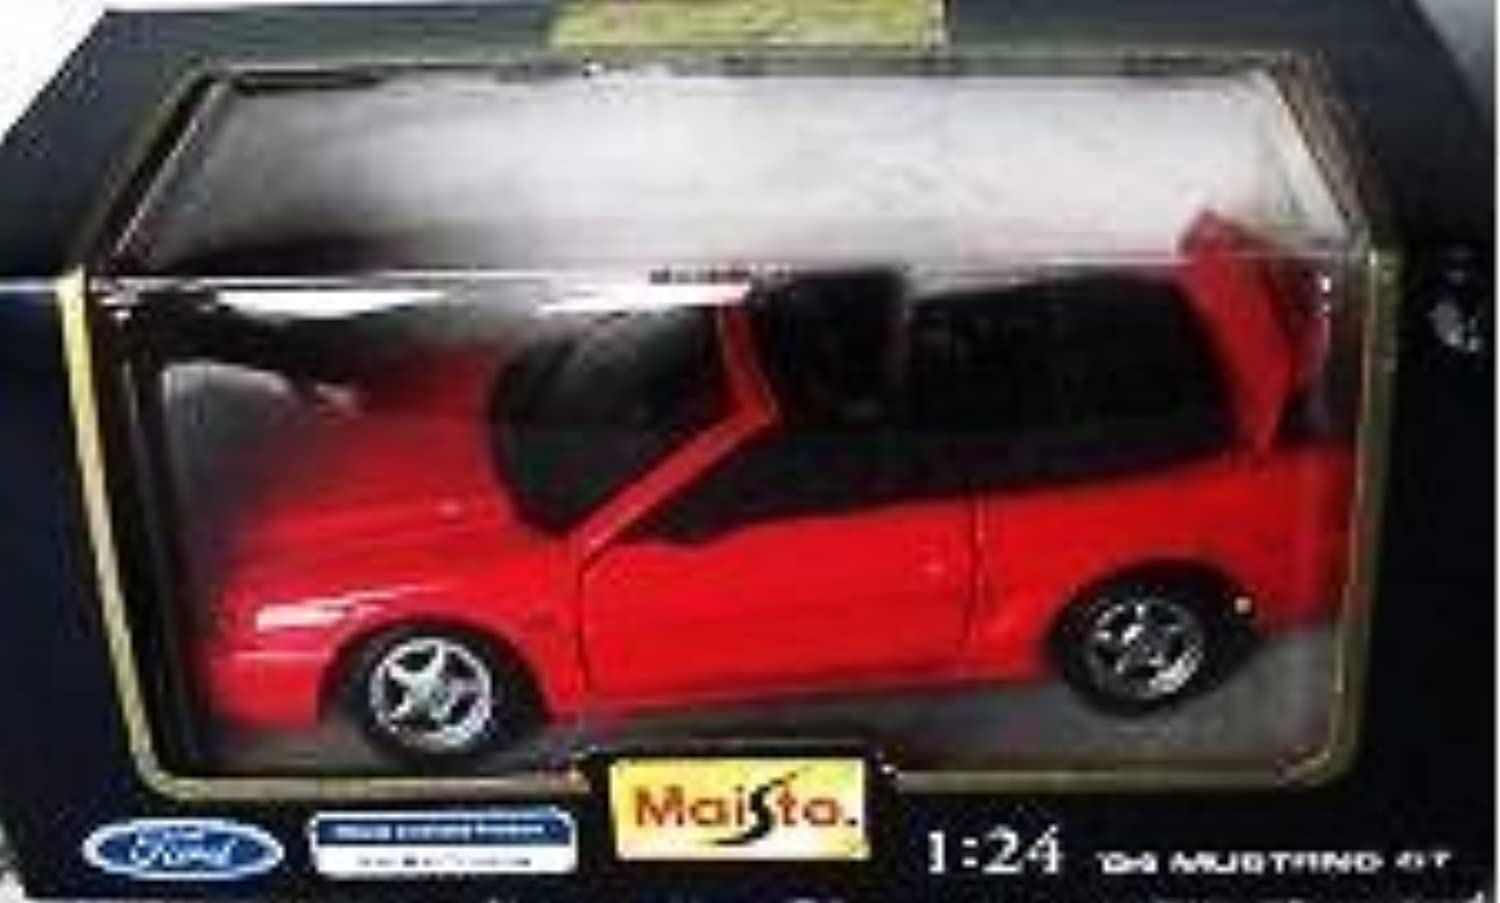 Maisto Special Edition 94 Mustang GT 1 24 by Maisto